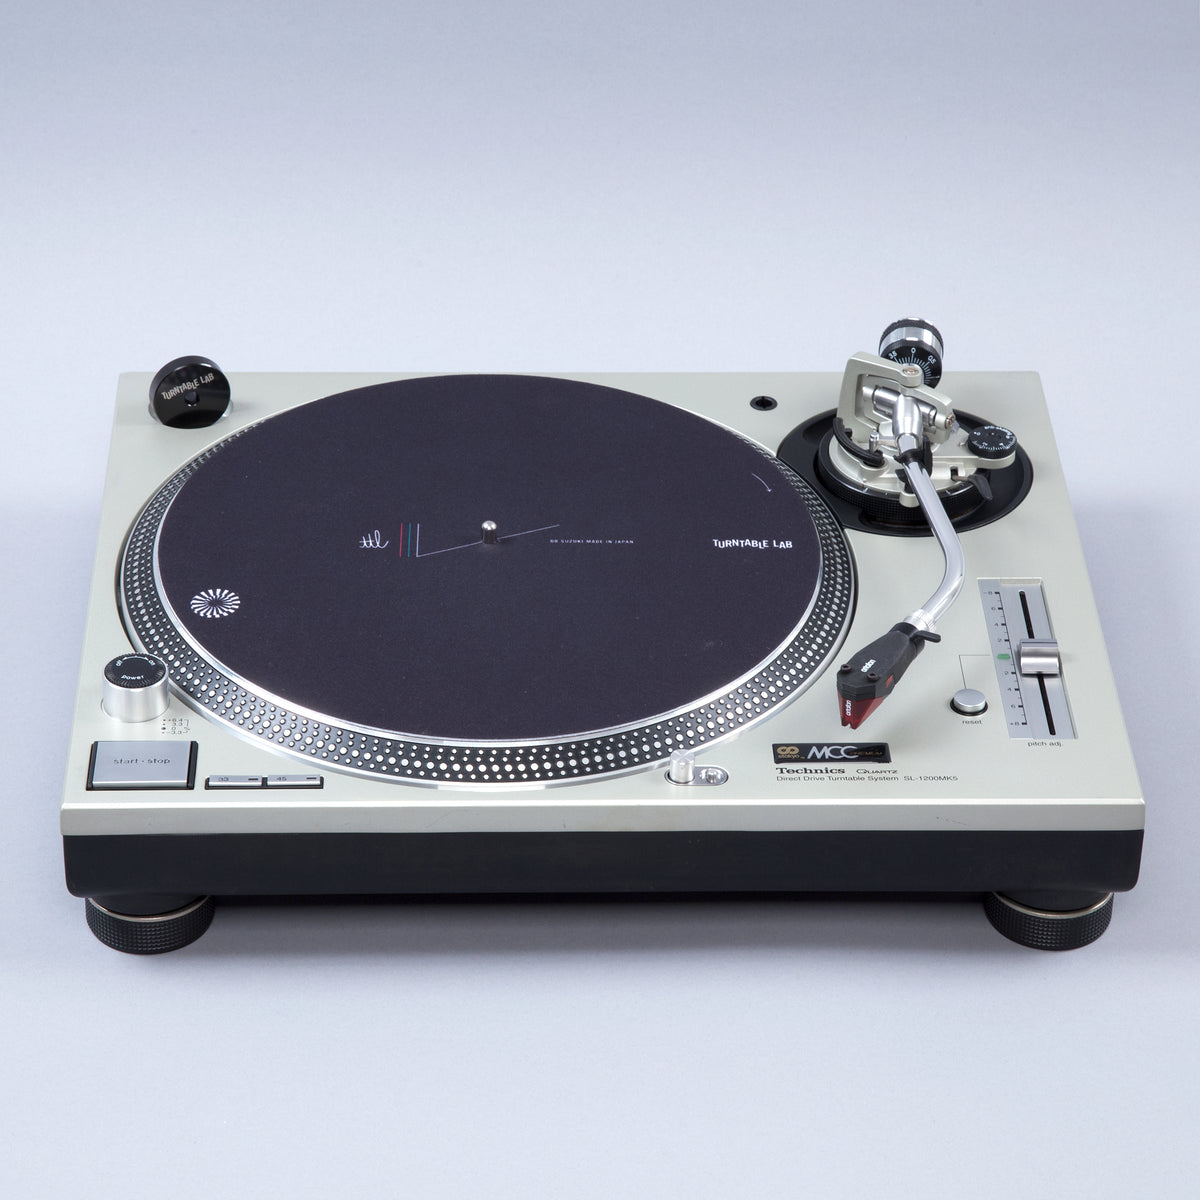 Turntable Lab: Dr. Suzuki Record Mat - Turntable Lab 1972 Edition